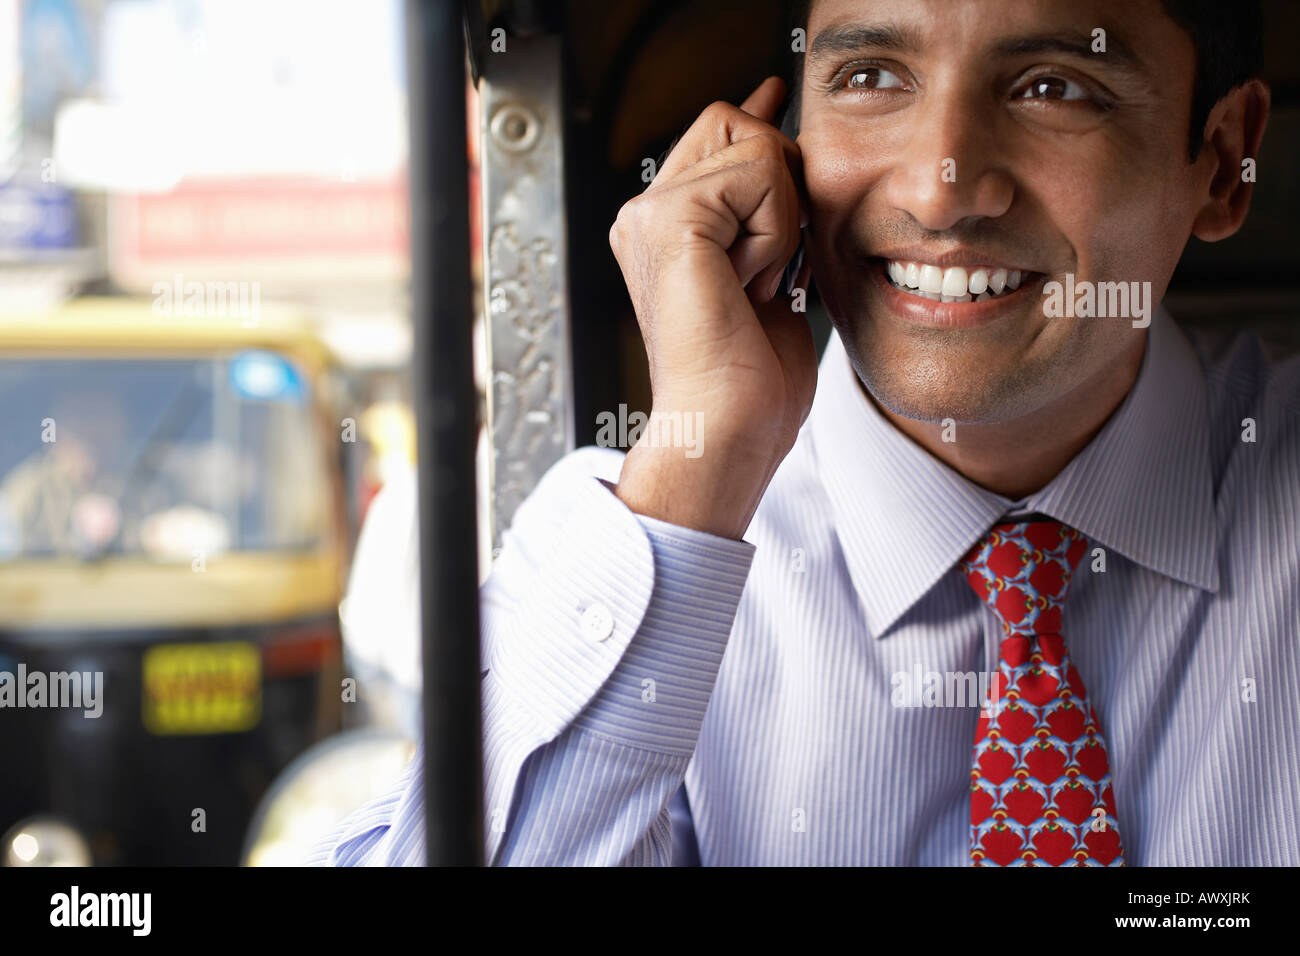 Business man using cell phone, smiling Photo Stock